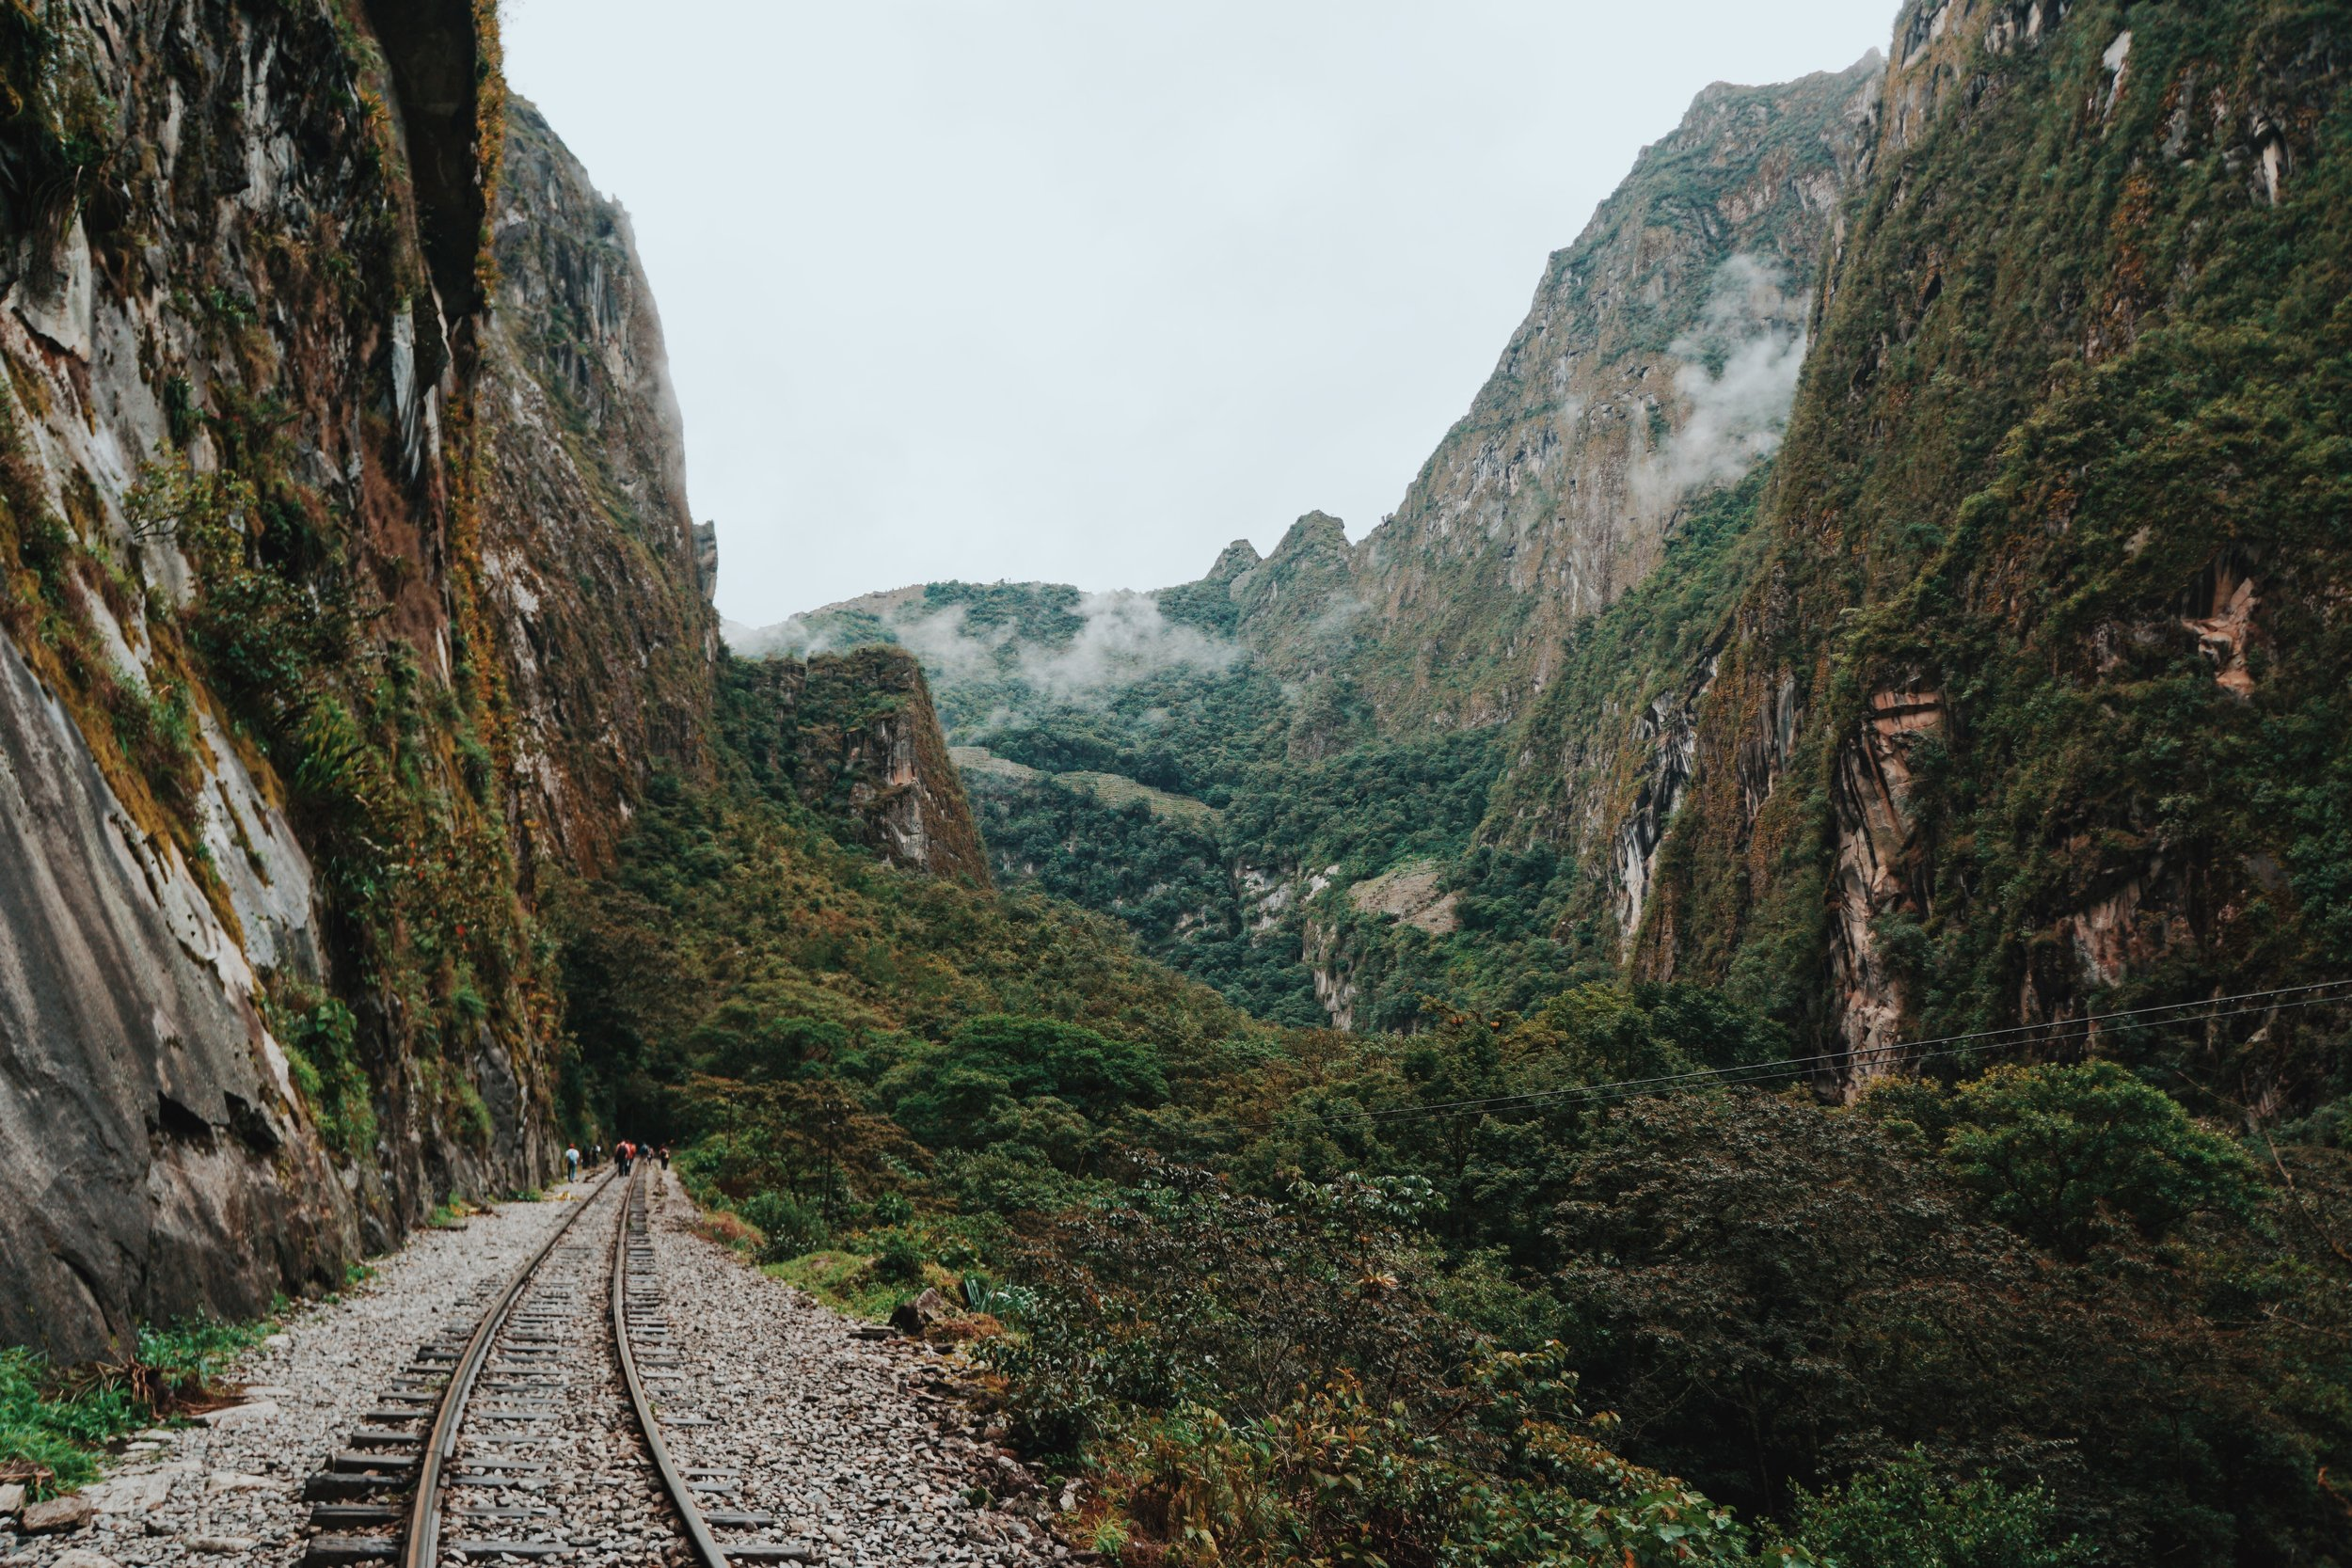 Hiking through the jungle along the train tracks to Aguas Calientes.